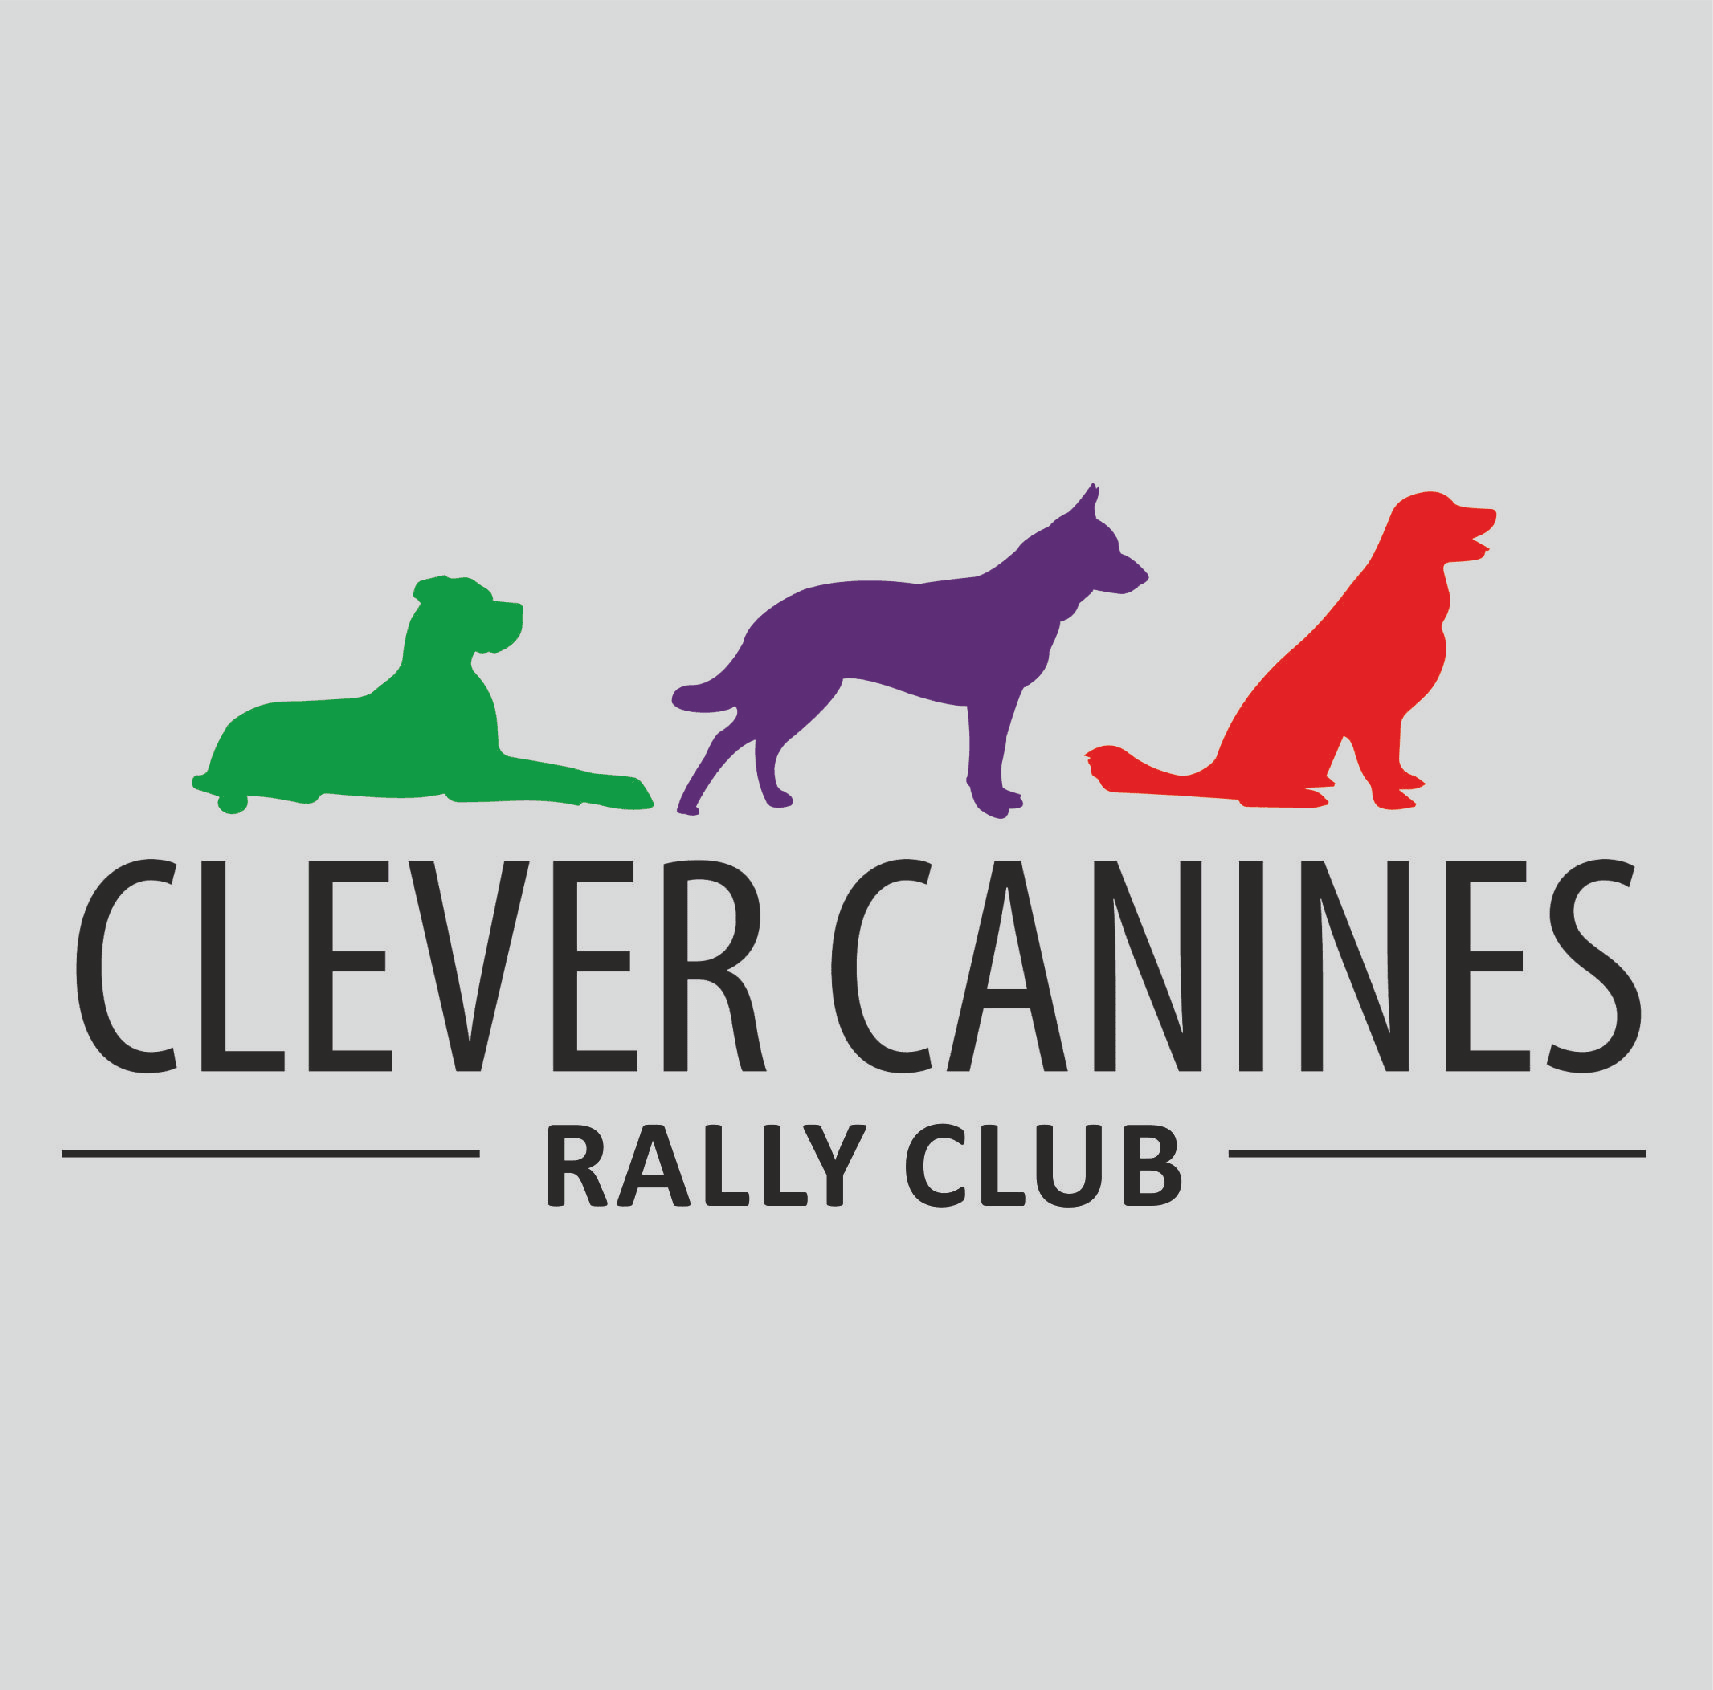 Clever canines logo sigma embroidery